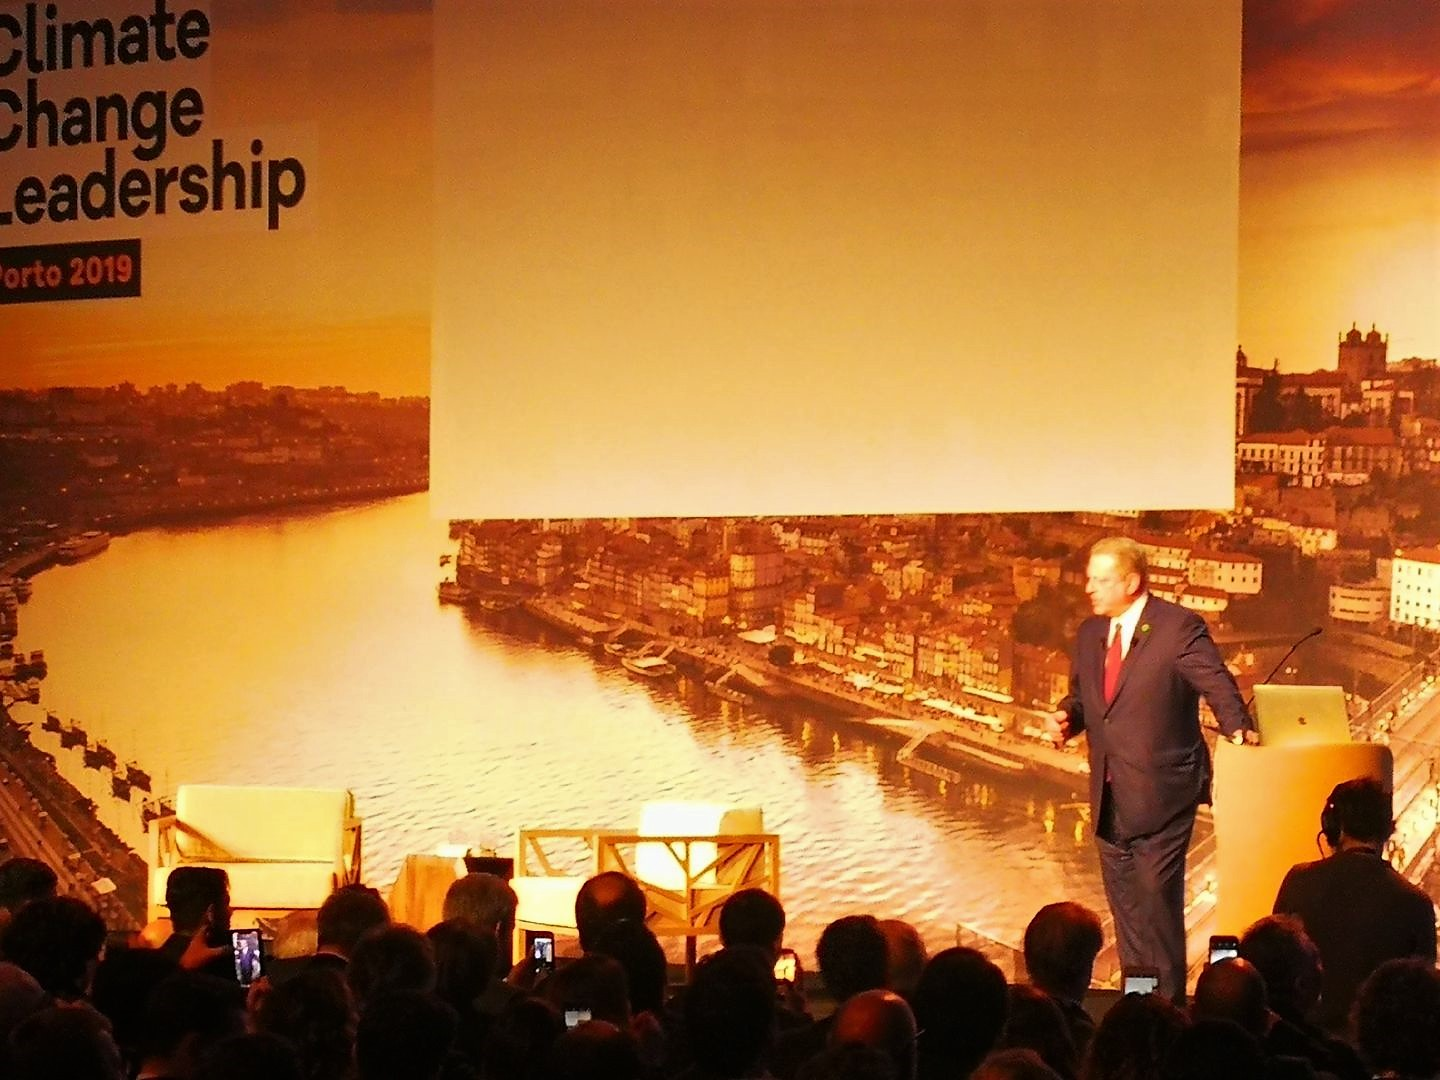 Climate Change Leadership Conference with Al Gore